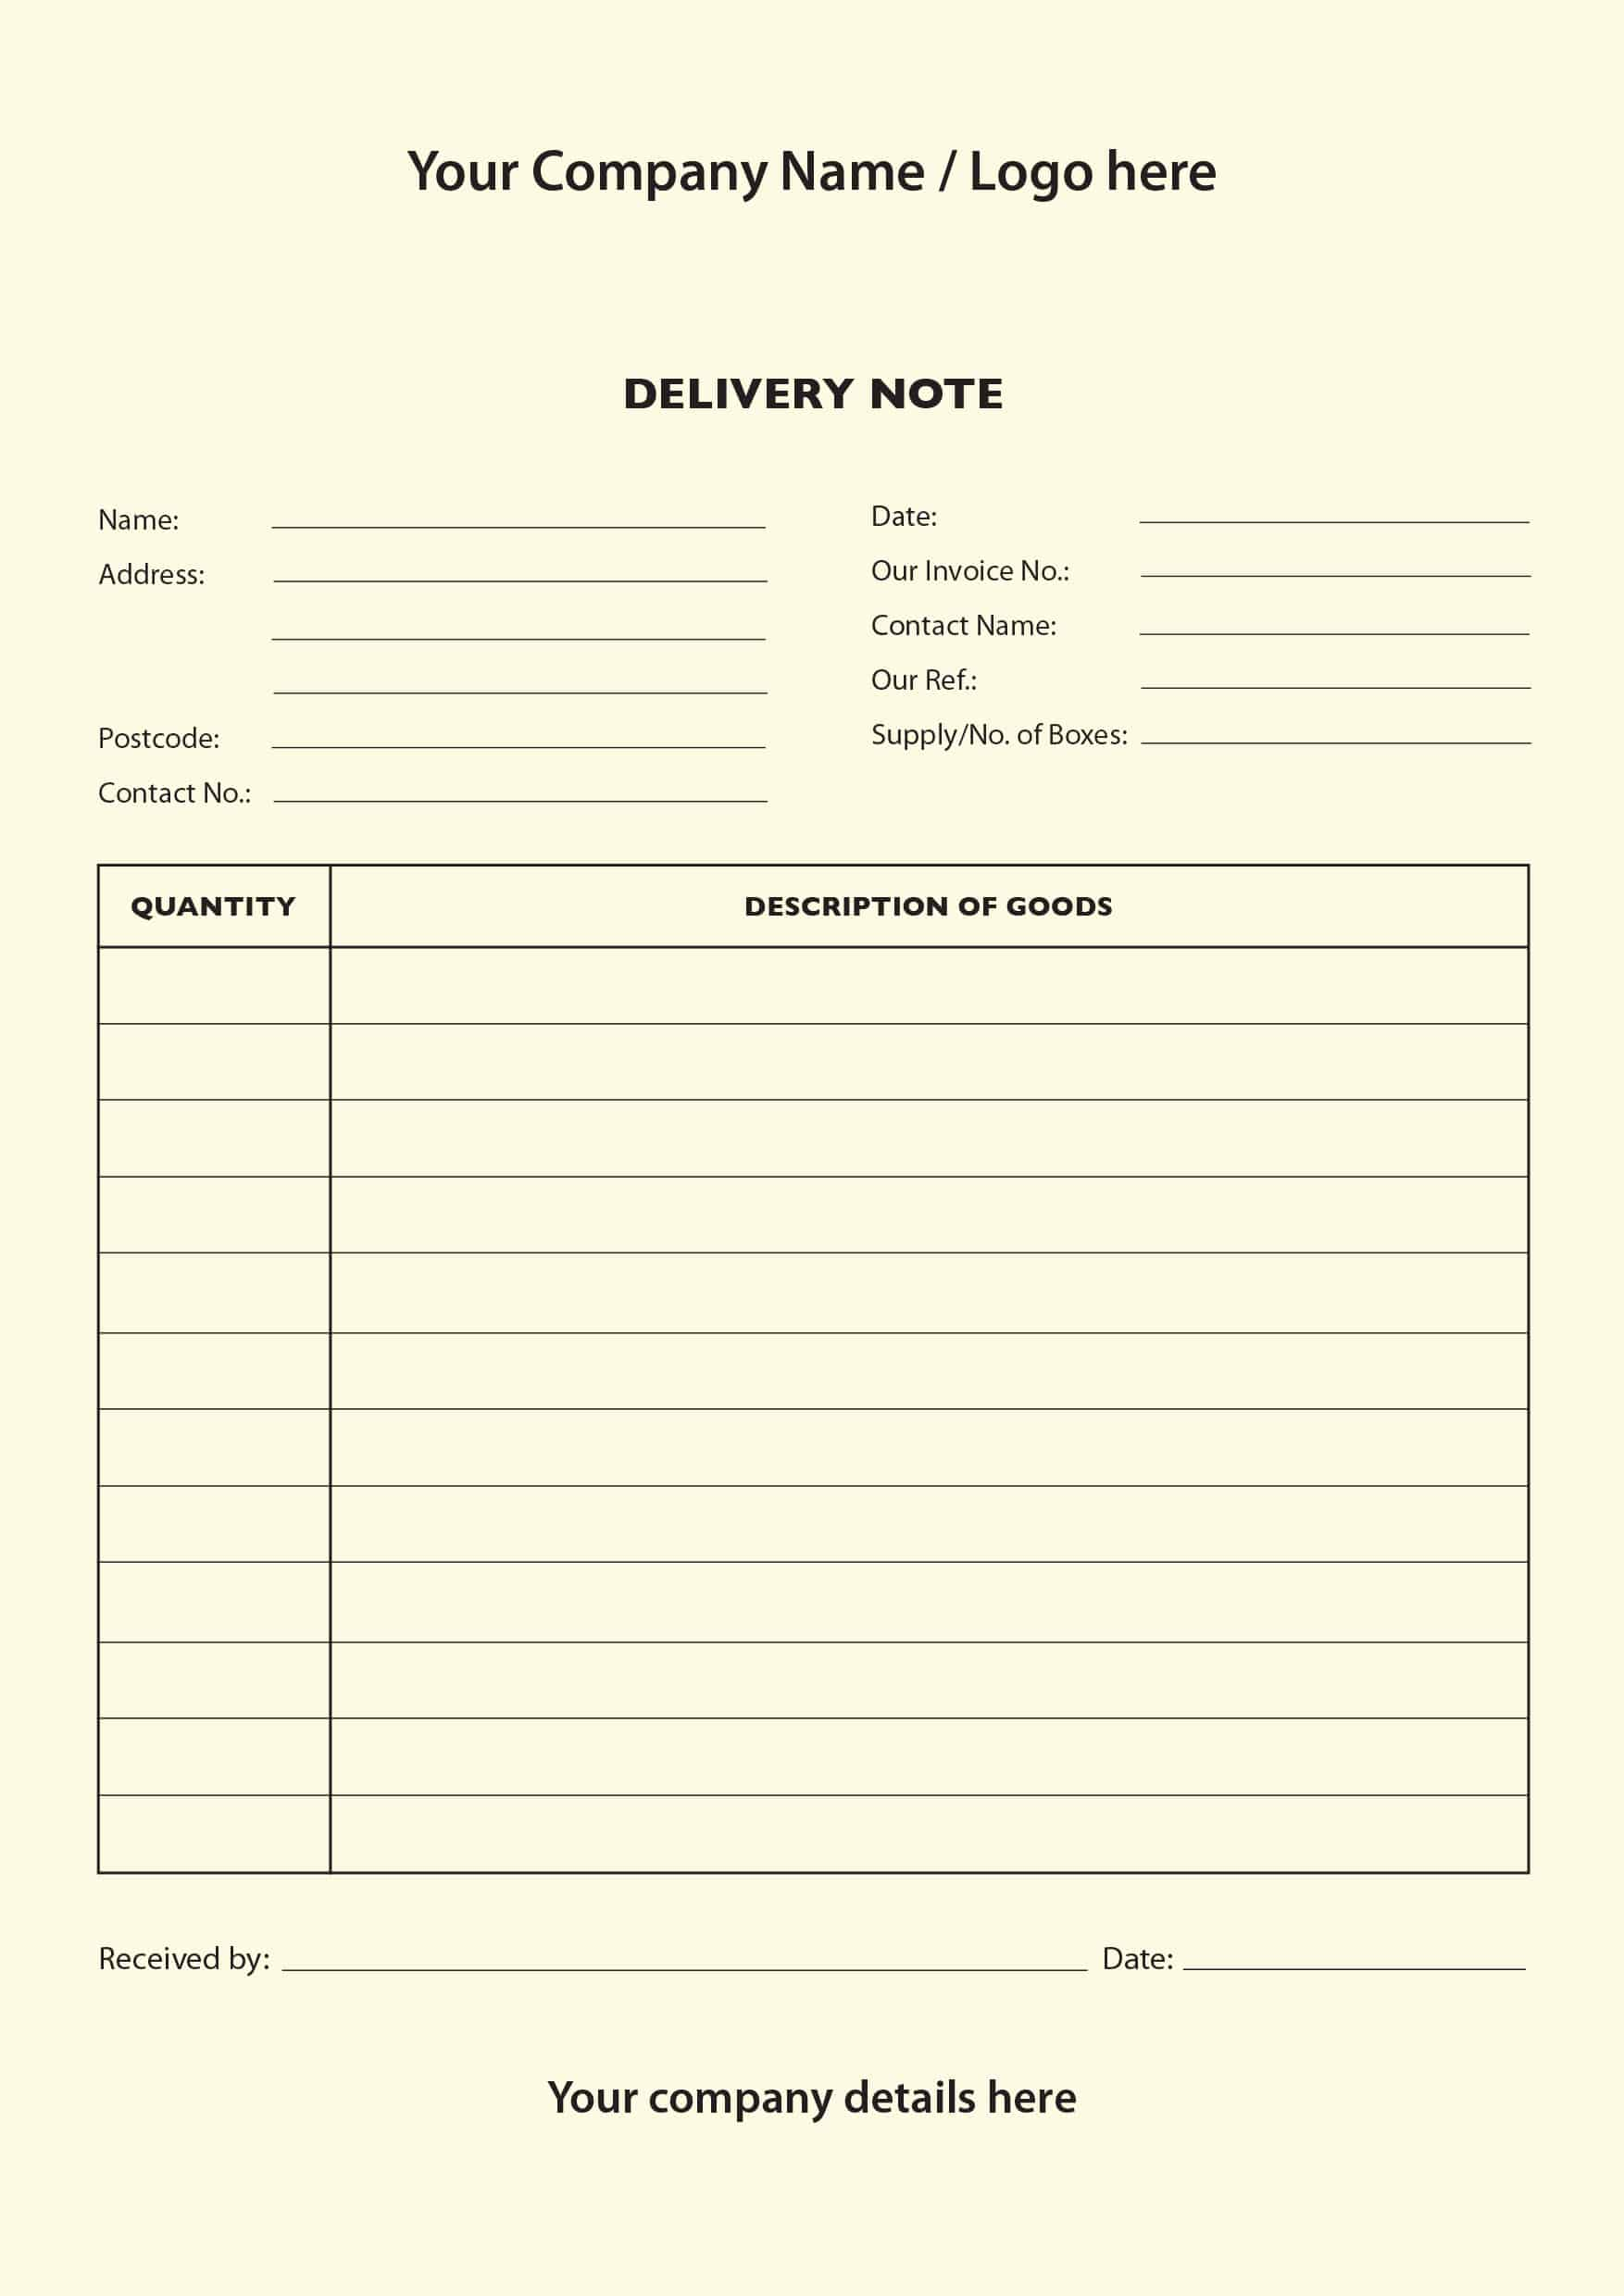 dispatch note template – Delivery Note Template